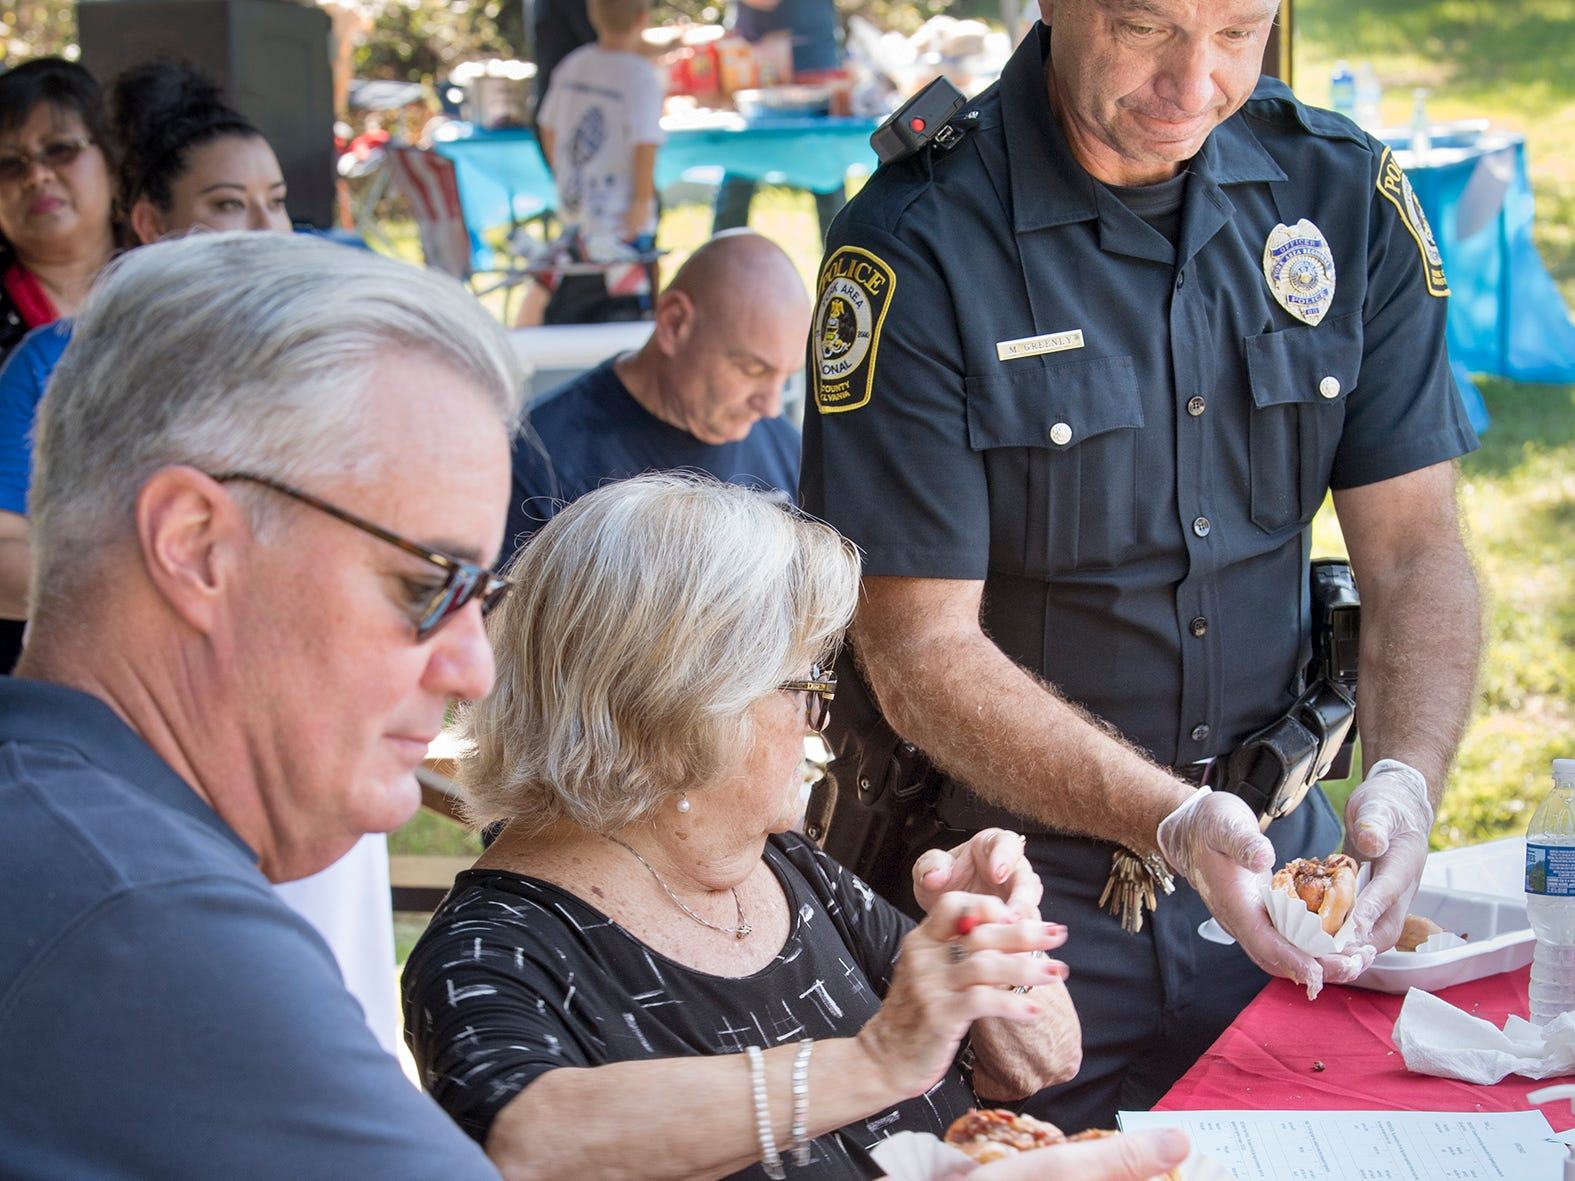 York Area Regional Patrolman Marc Greenly, right, hands over a 'Glazed and Confused' doughnut to judges Chris Reilly, left, and JoAnn L. Teyral, a senior magisterial judge during the recent York County Crimes Stoppers Top Dog Contest fundraiser at William Kain County Park.